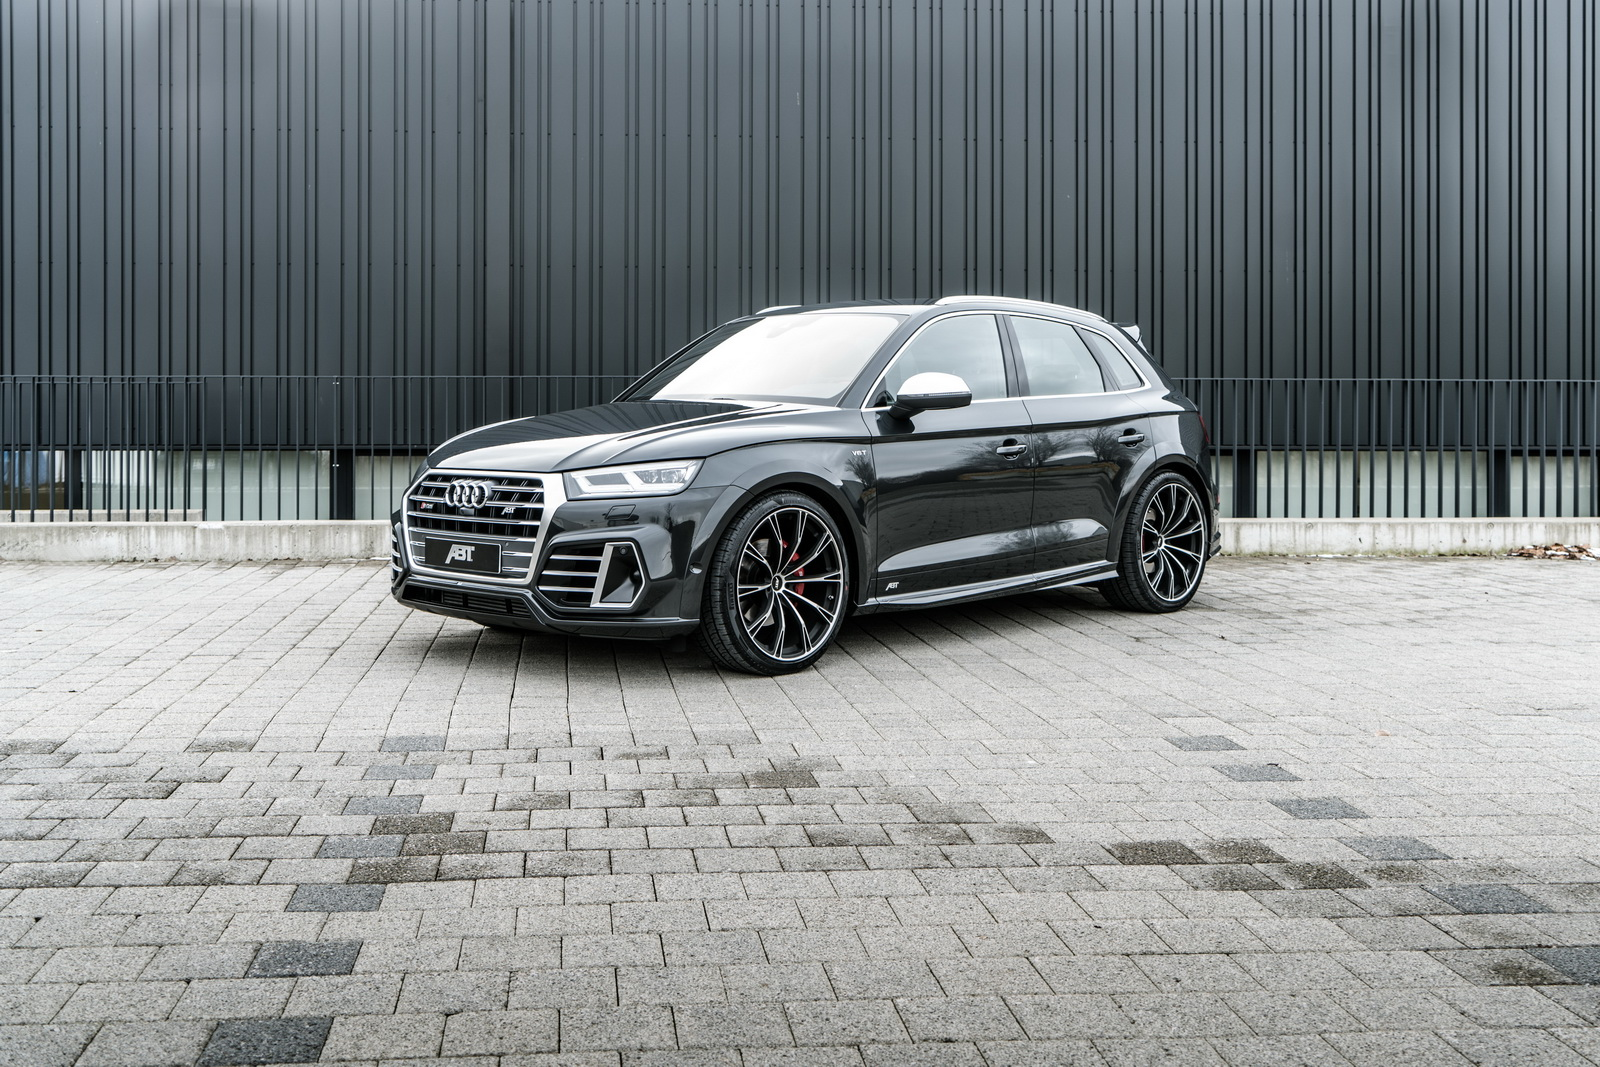 Audi SQ5 Tuning by ABT Includes Widebody Kit and 425 HP - autoevolution